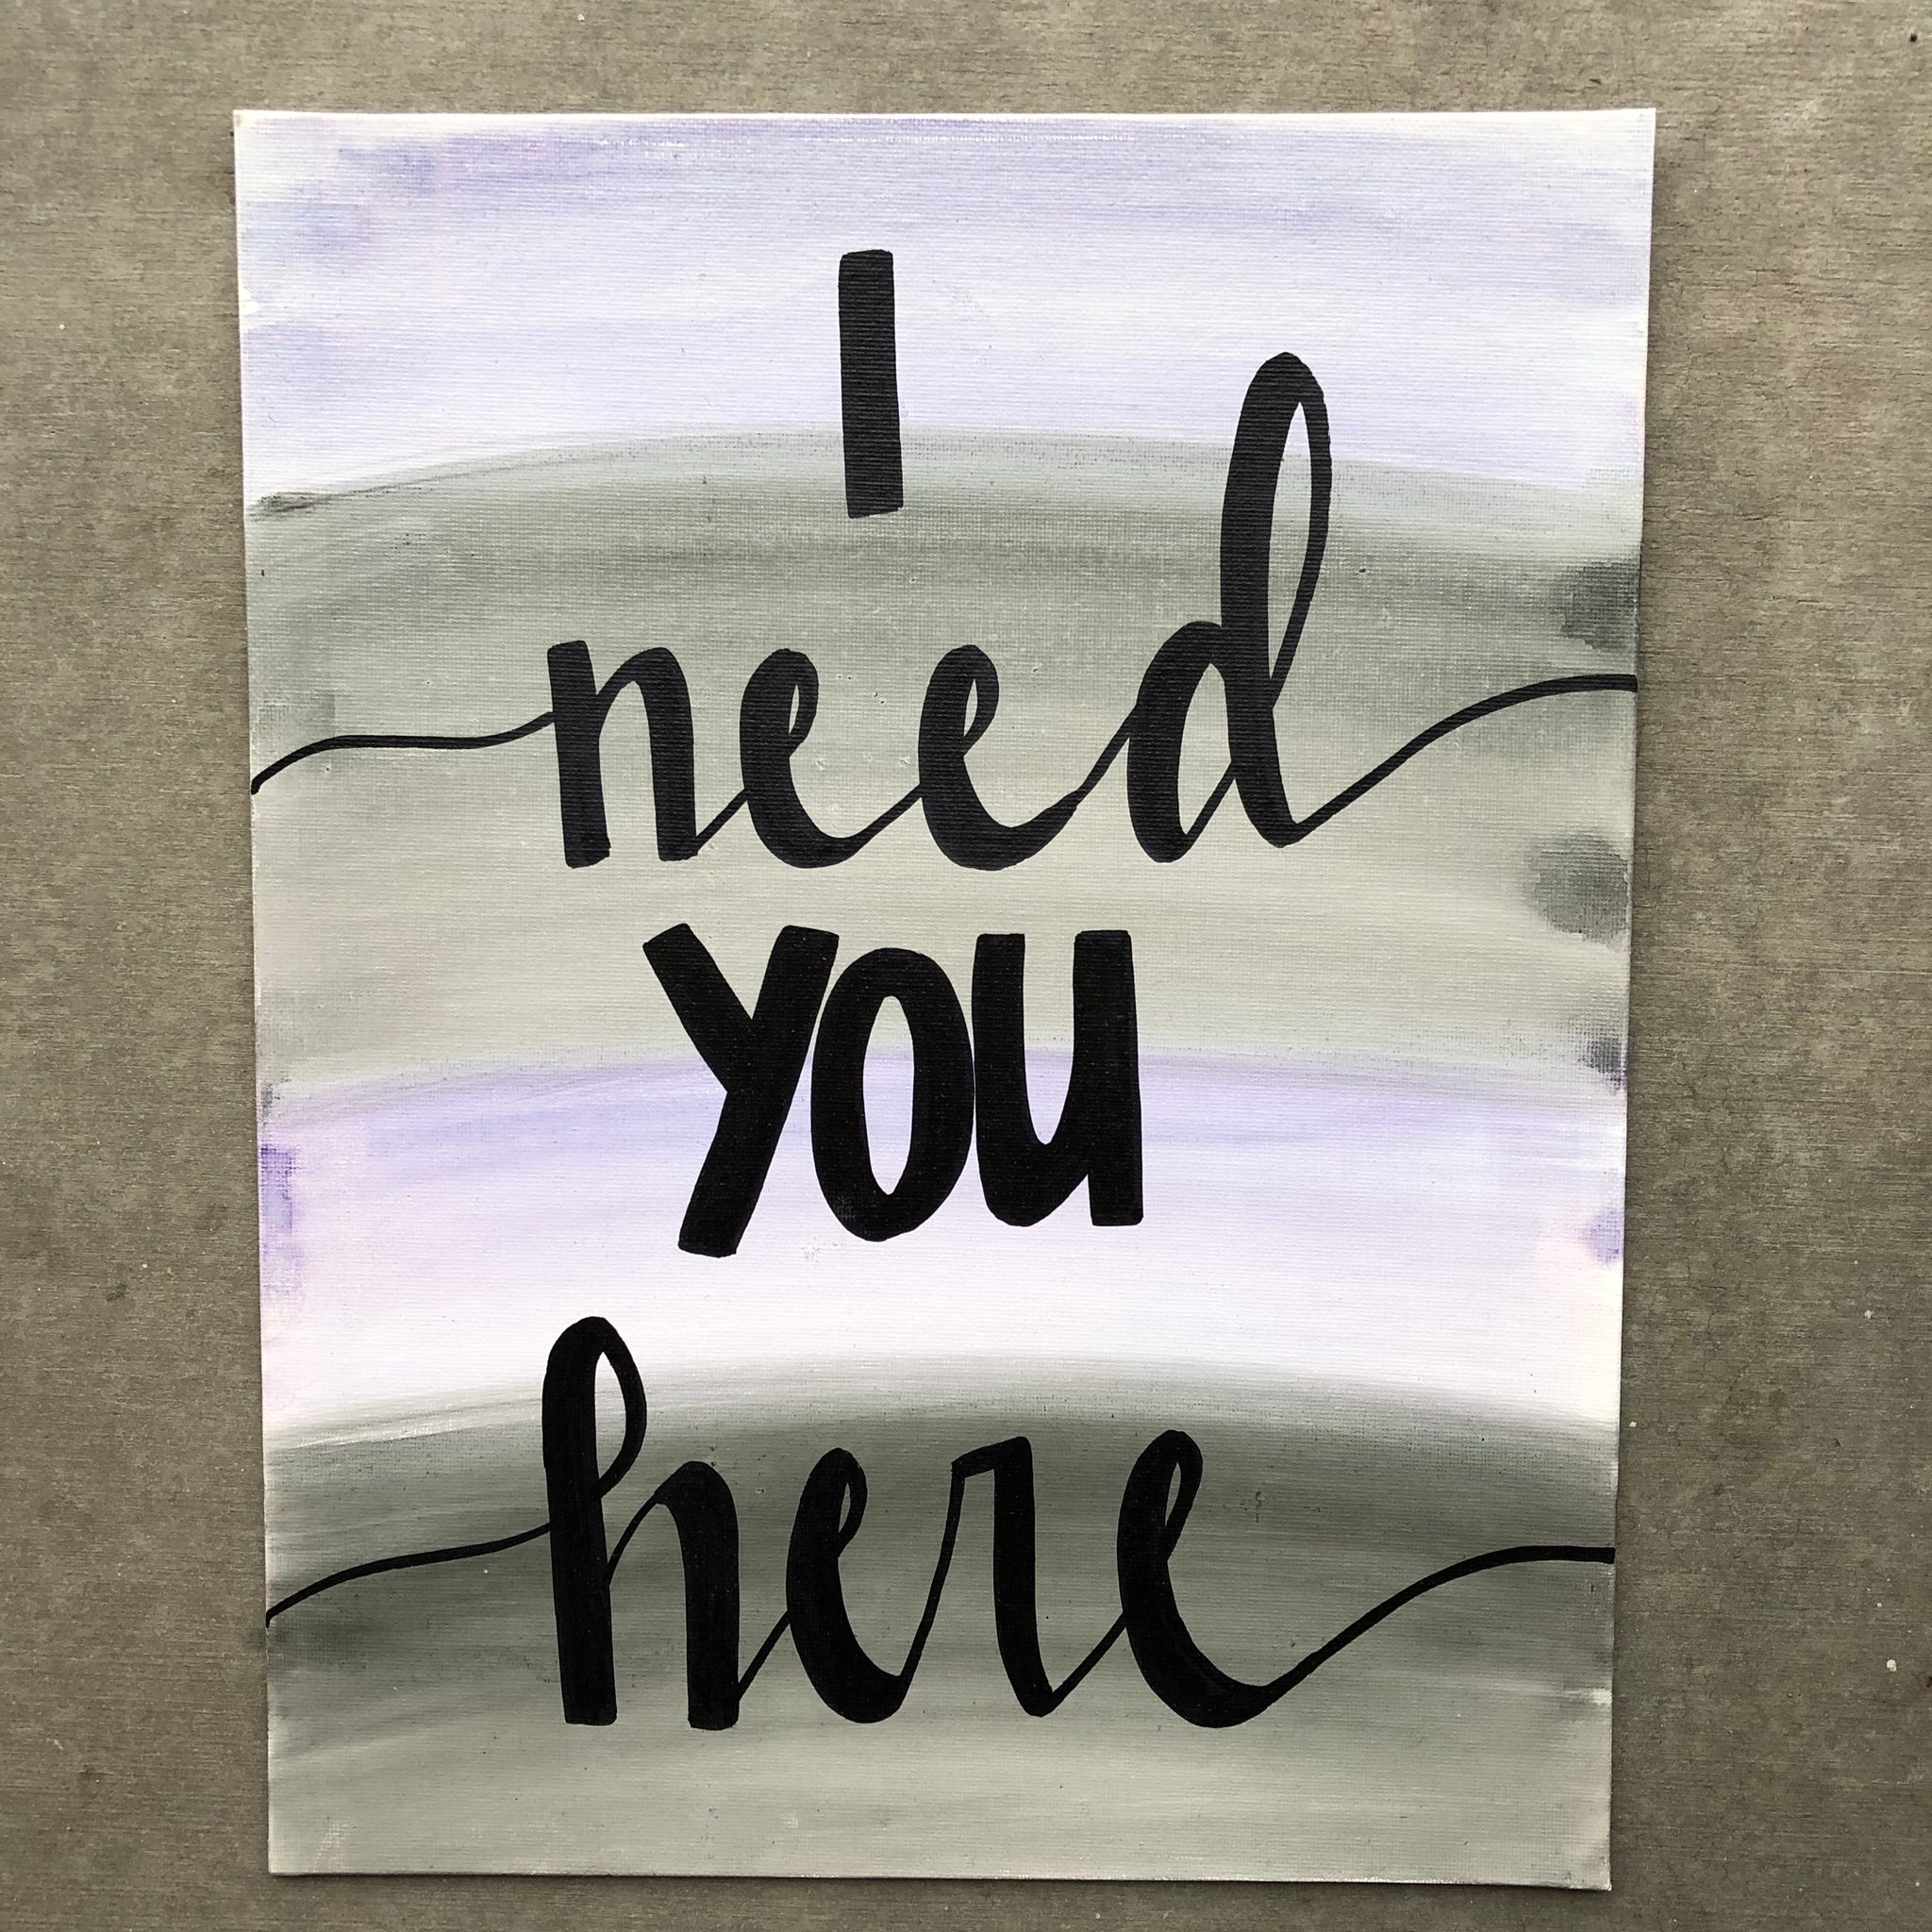 I need you here canvas for someone who matters to you. Gift idea.